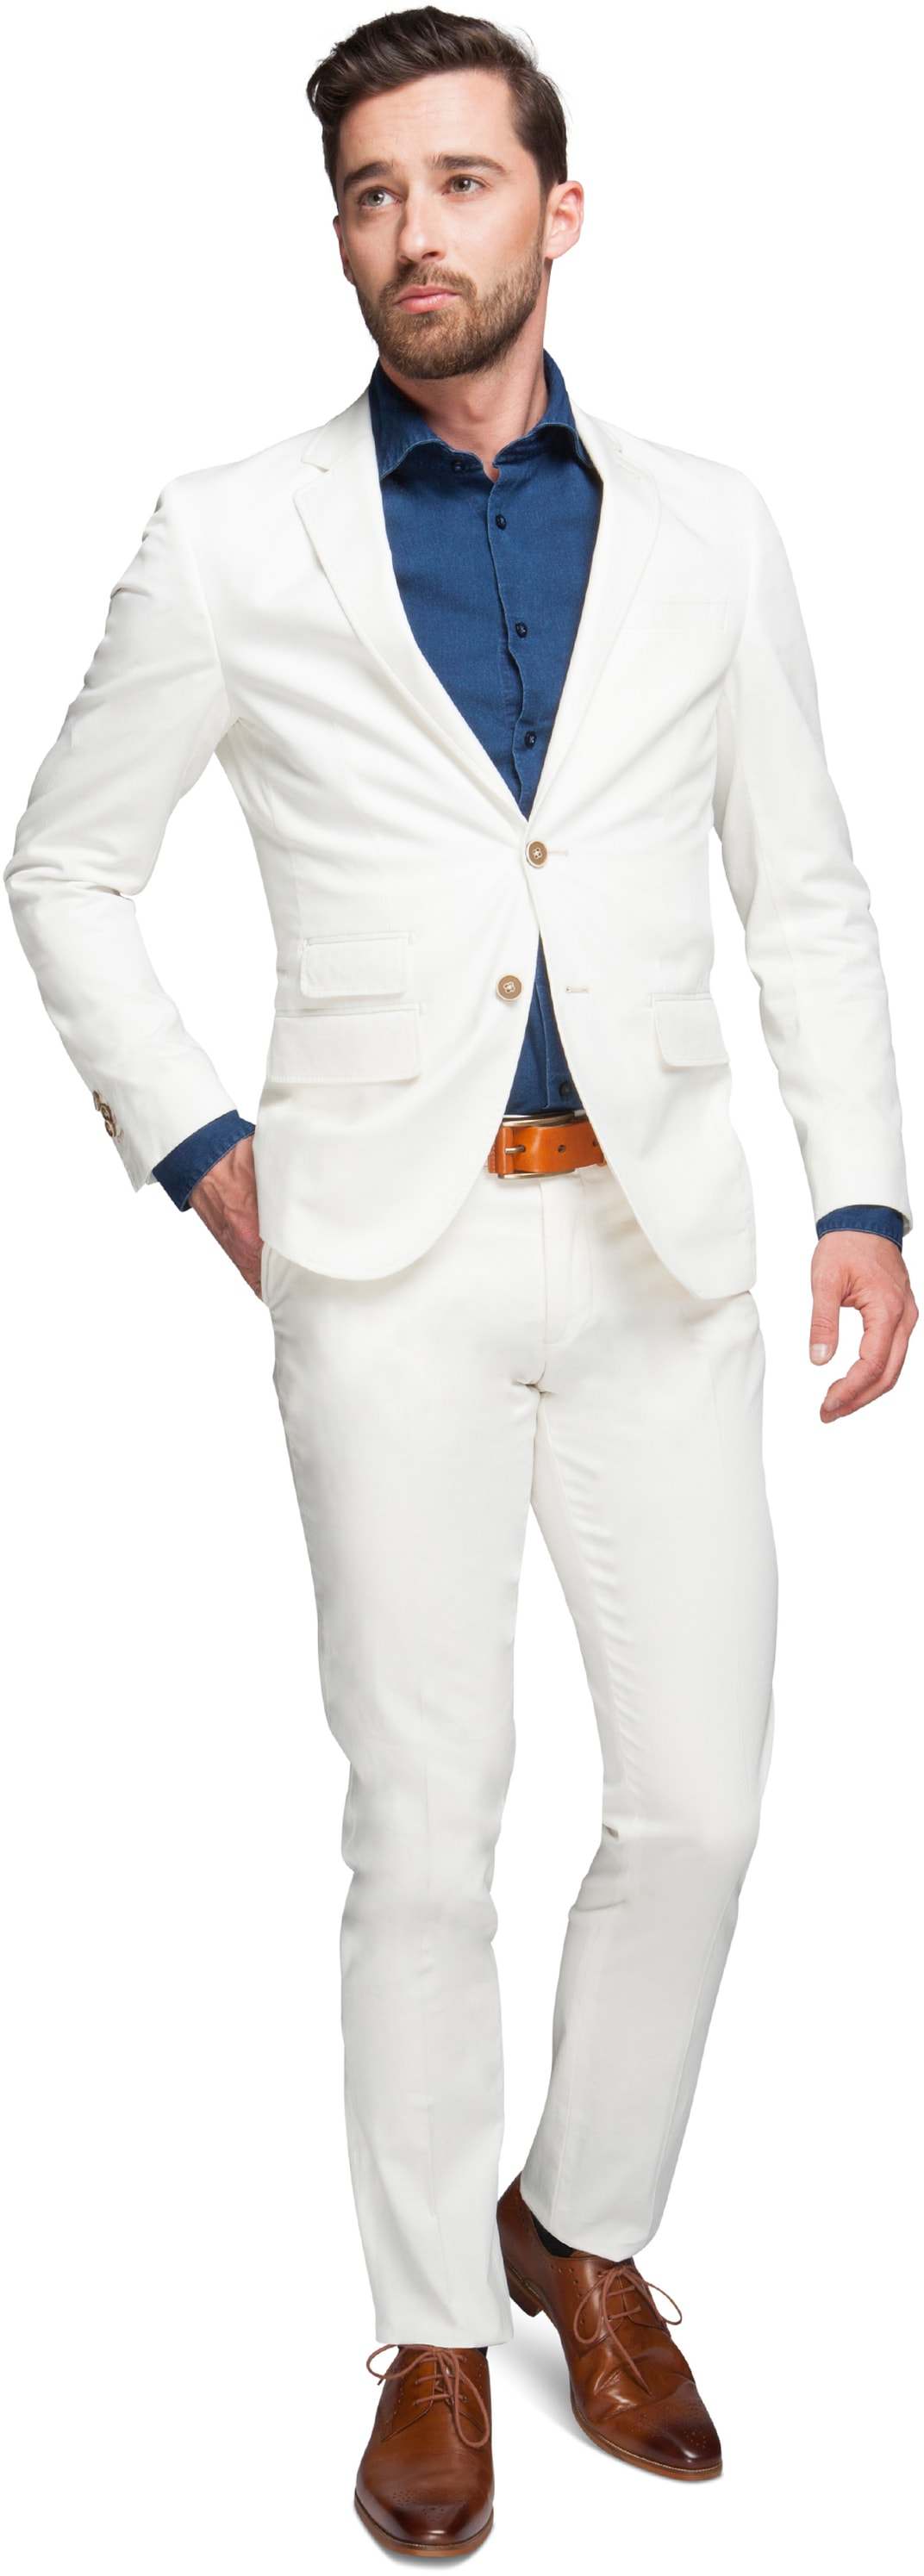 Suitable Suit Algodao Off White foto 0